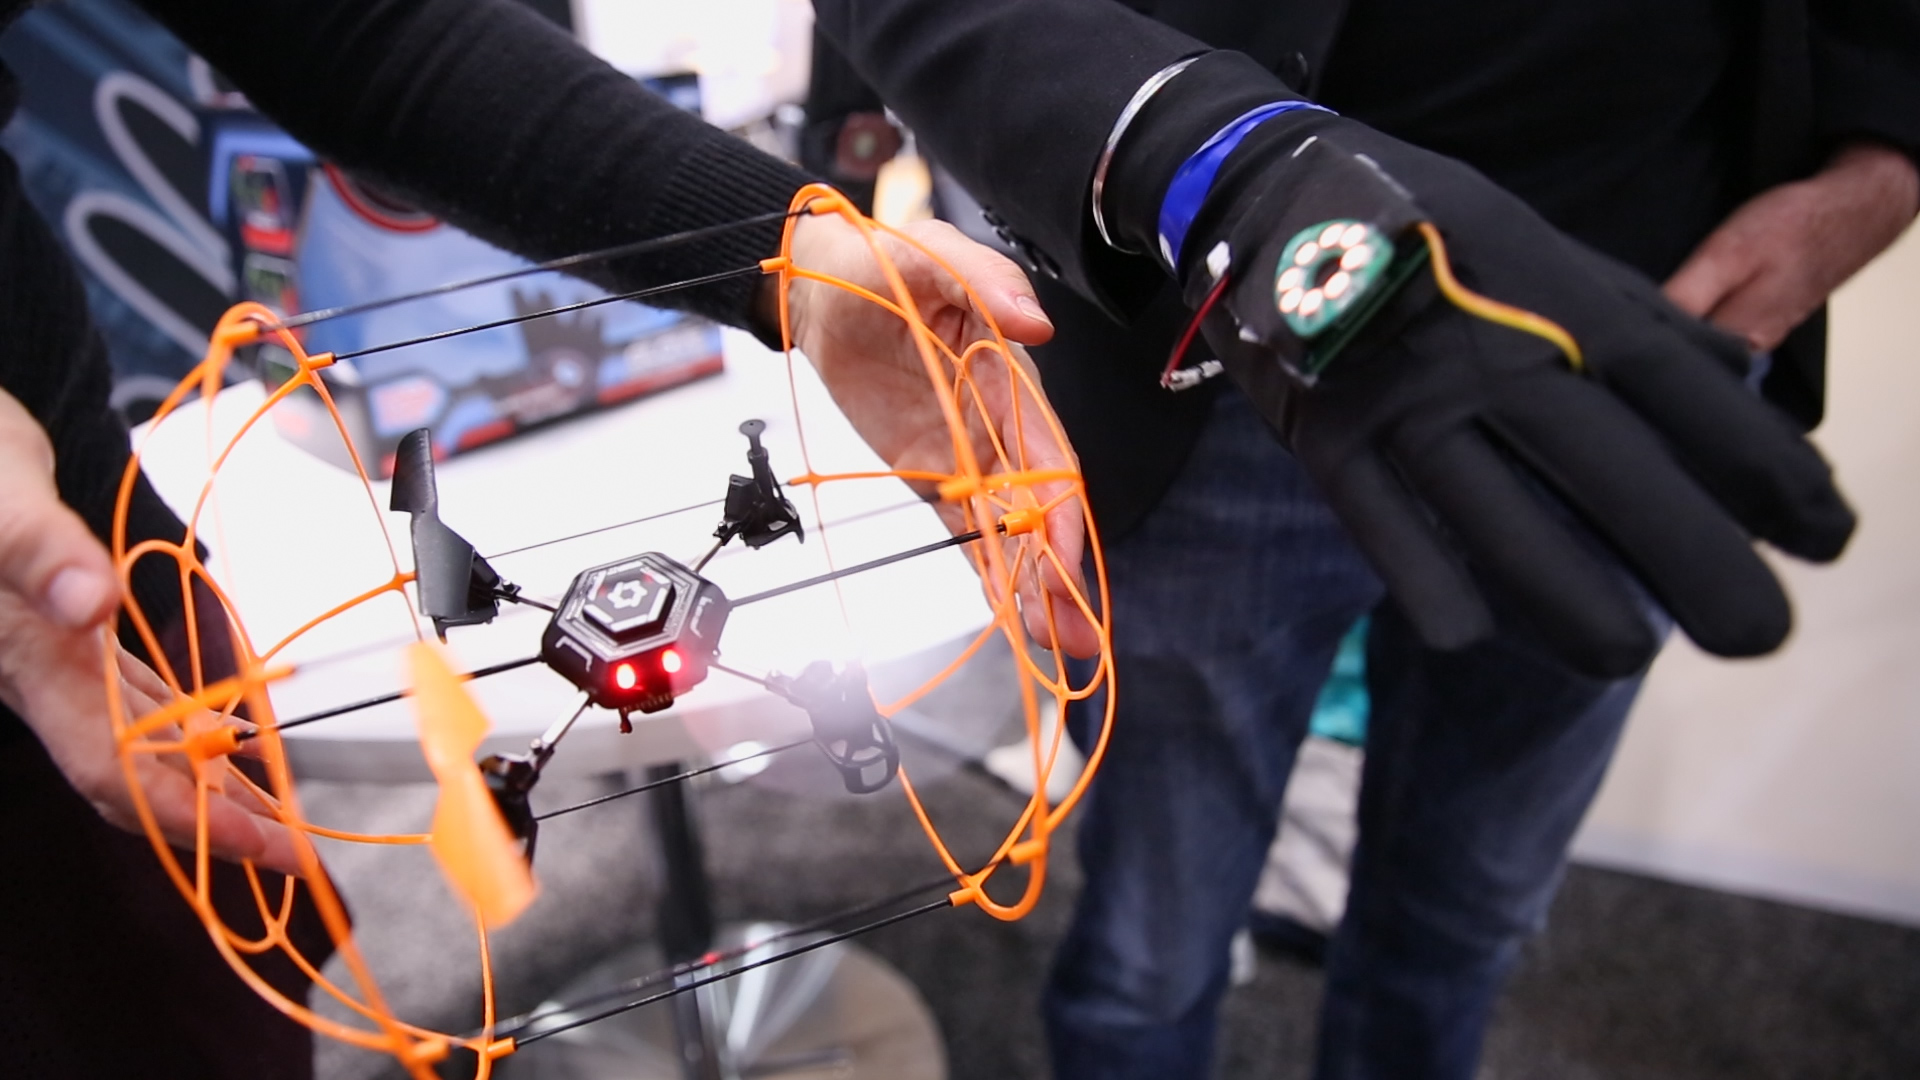 Video: Aura is a drone you fly with hand gestures